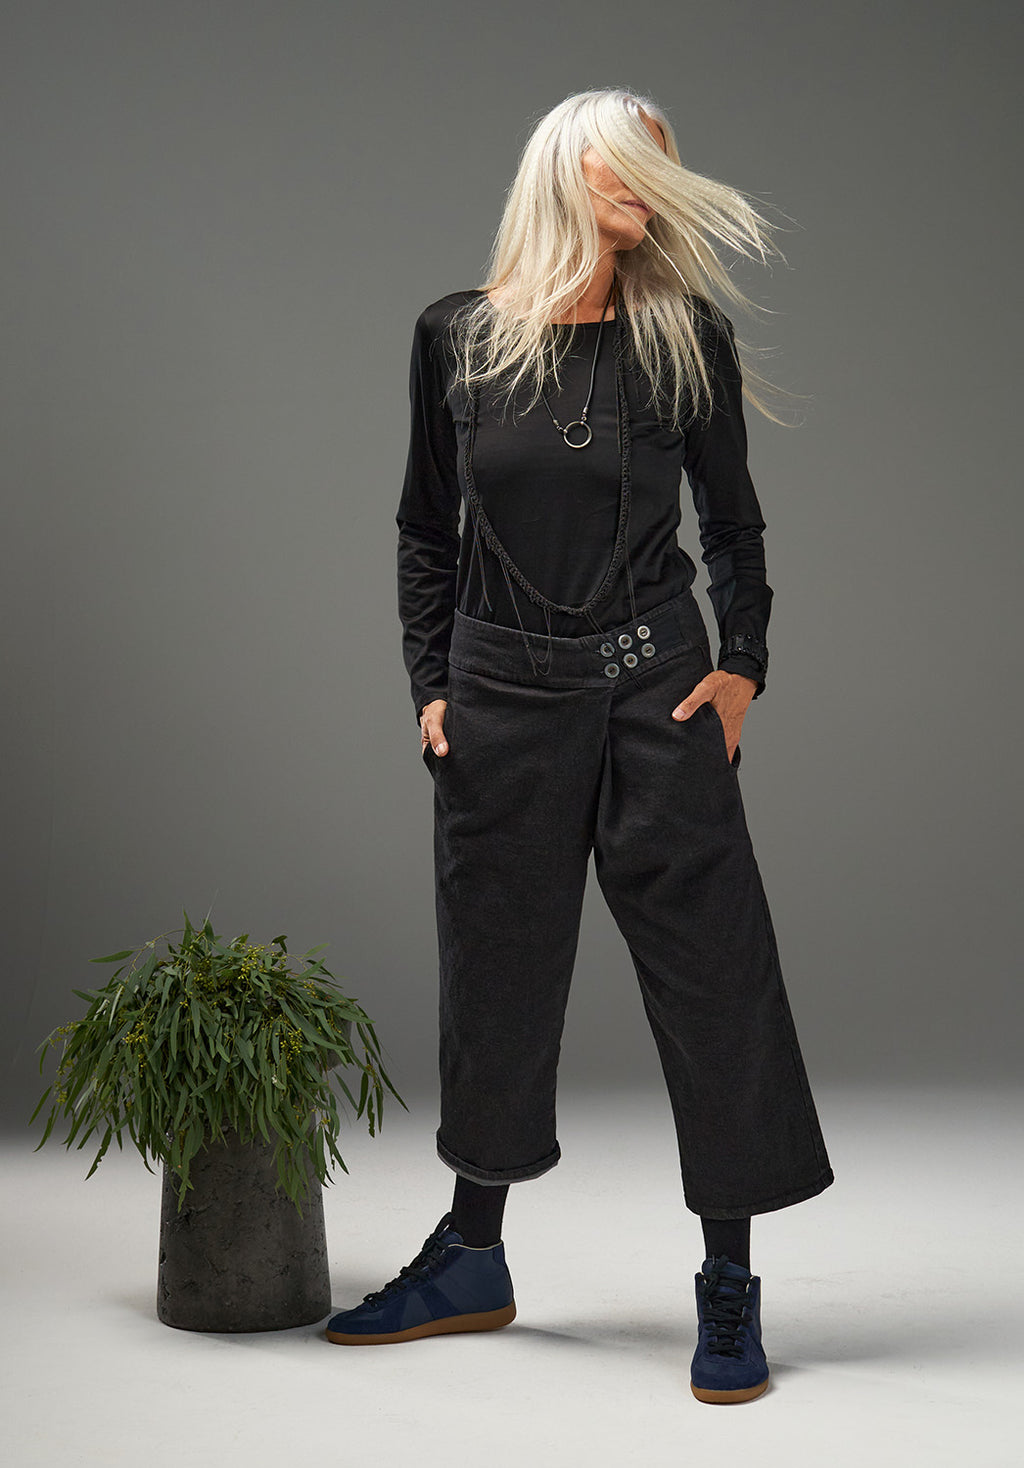 womens pants australia, ethical fashion online, sustainable fashion online, womens pants fashion, womens pants black,